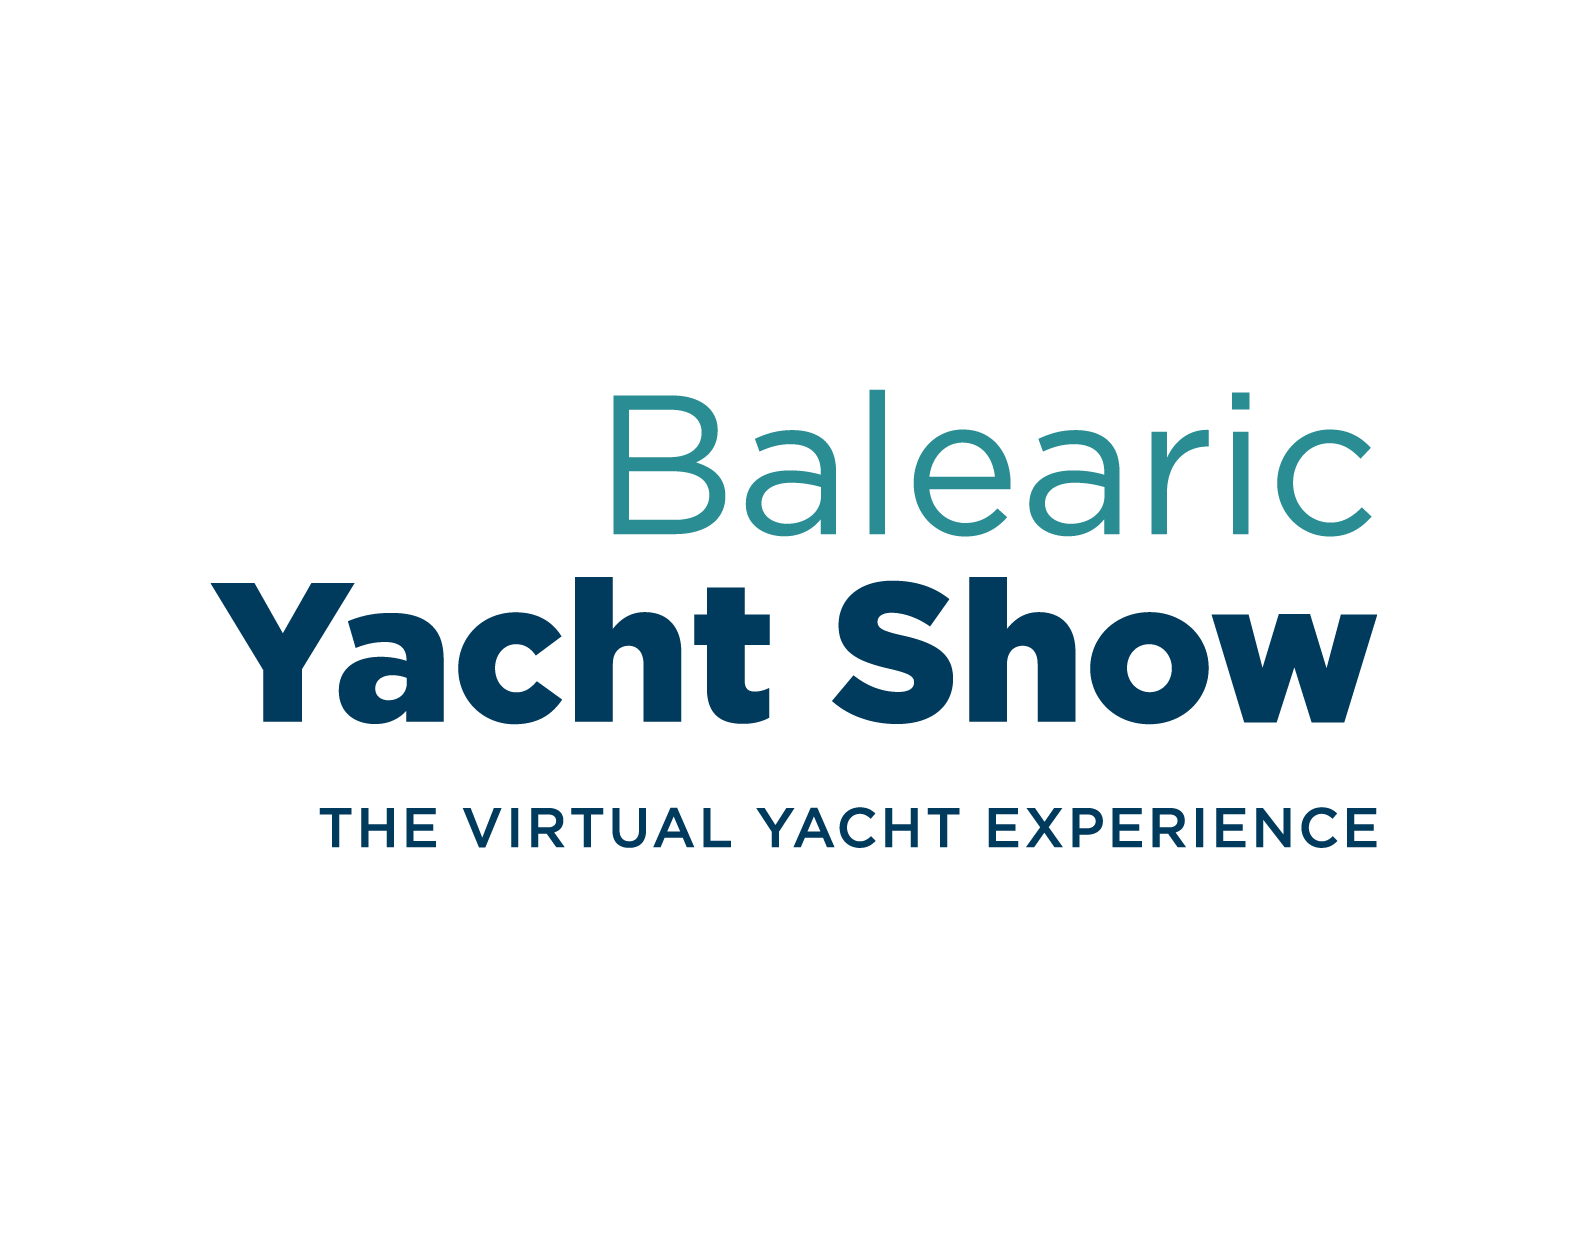 Balearic Yacht Show, una experiencia 100% online